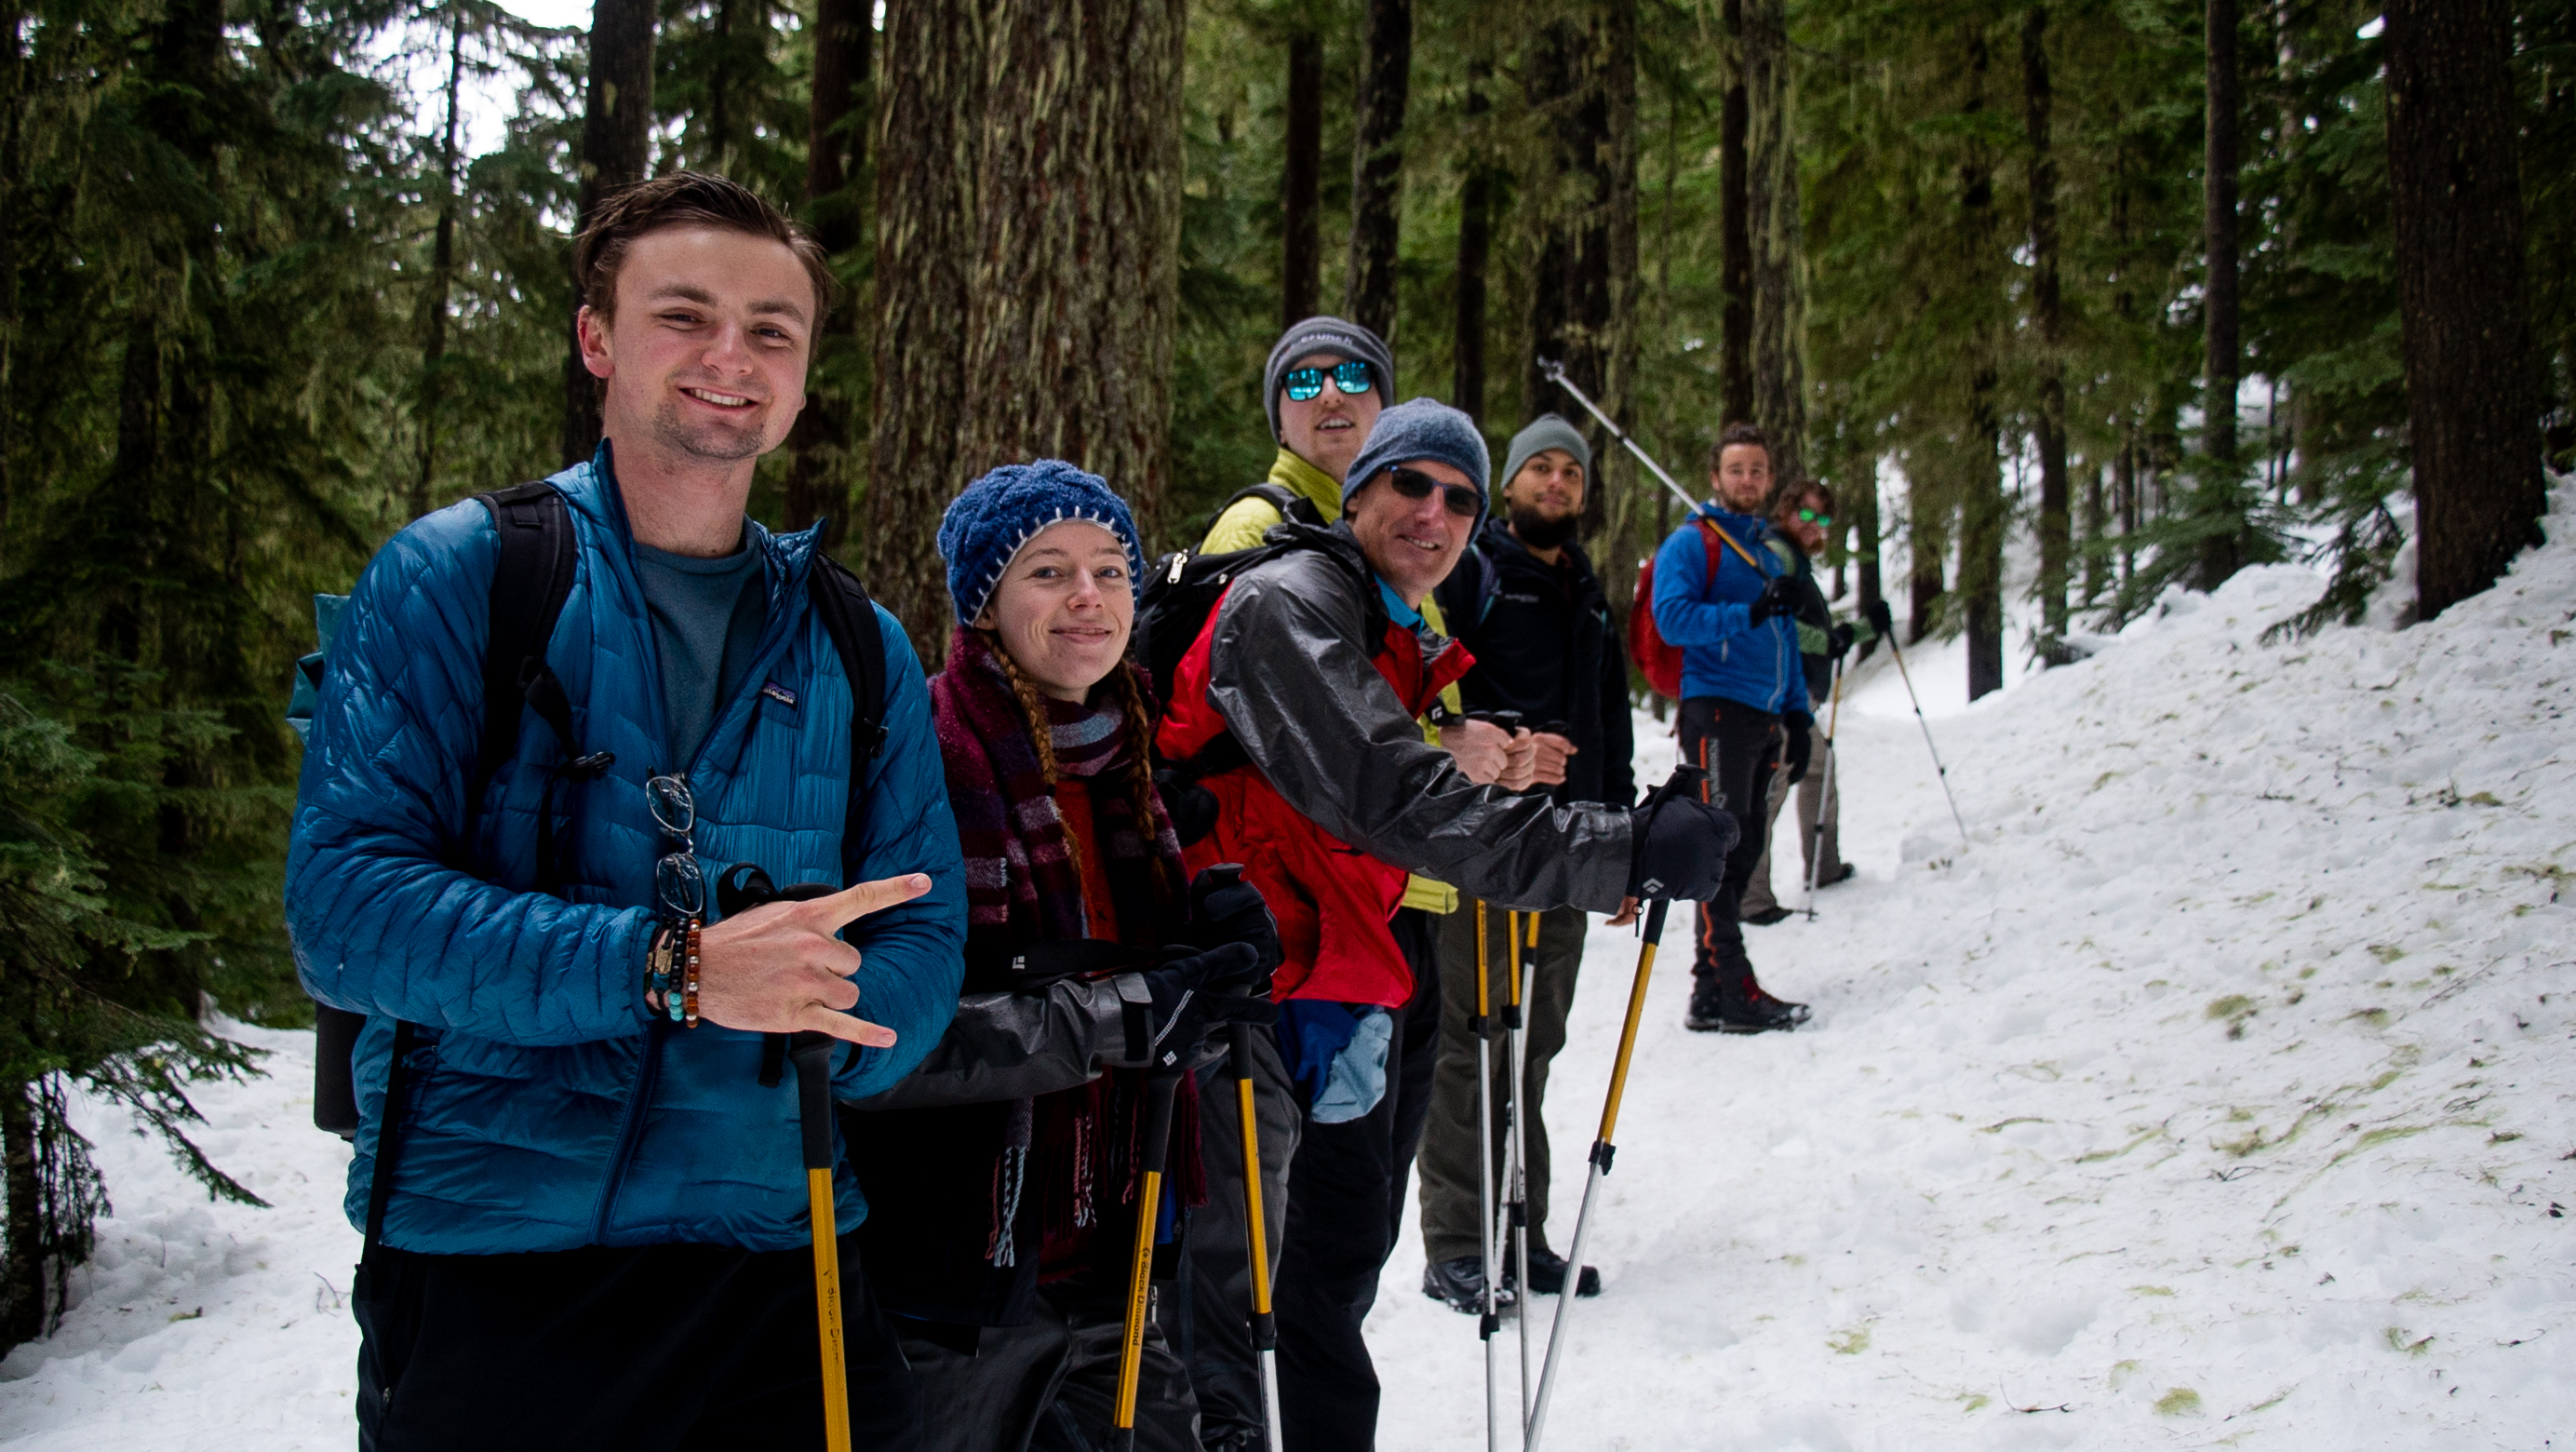 A group of people lined up in the snow with snowshoeing equipment.